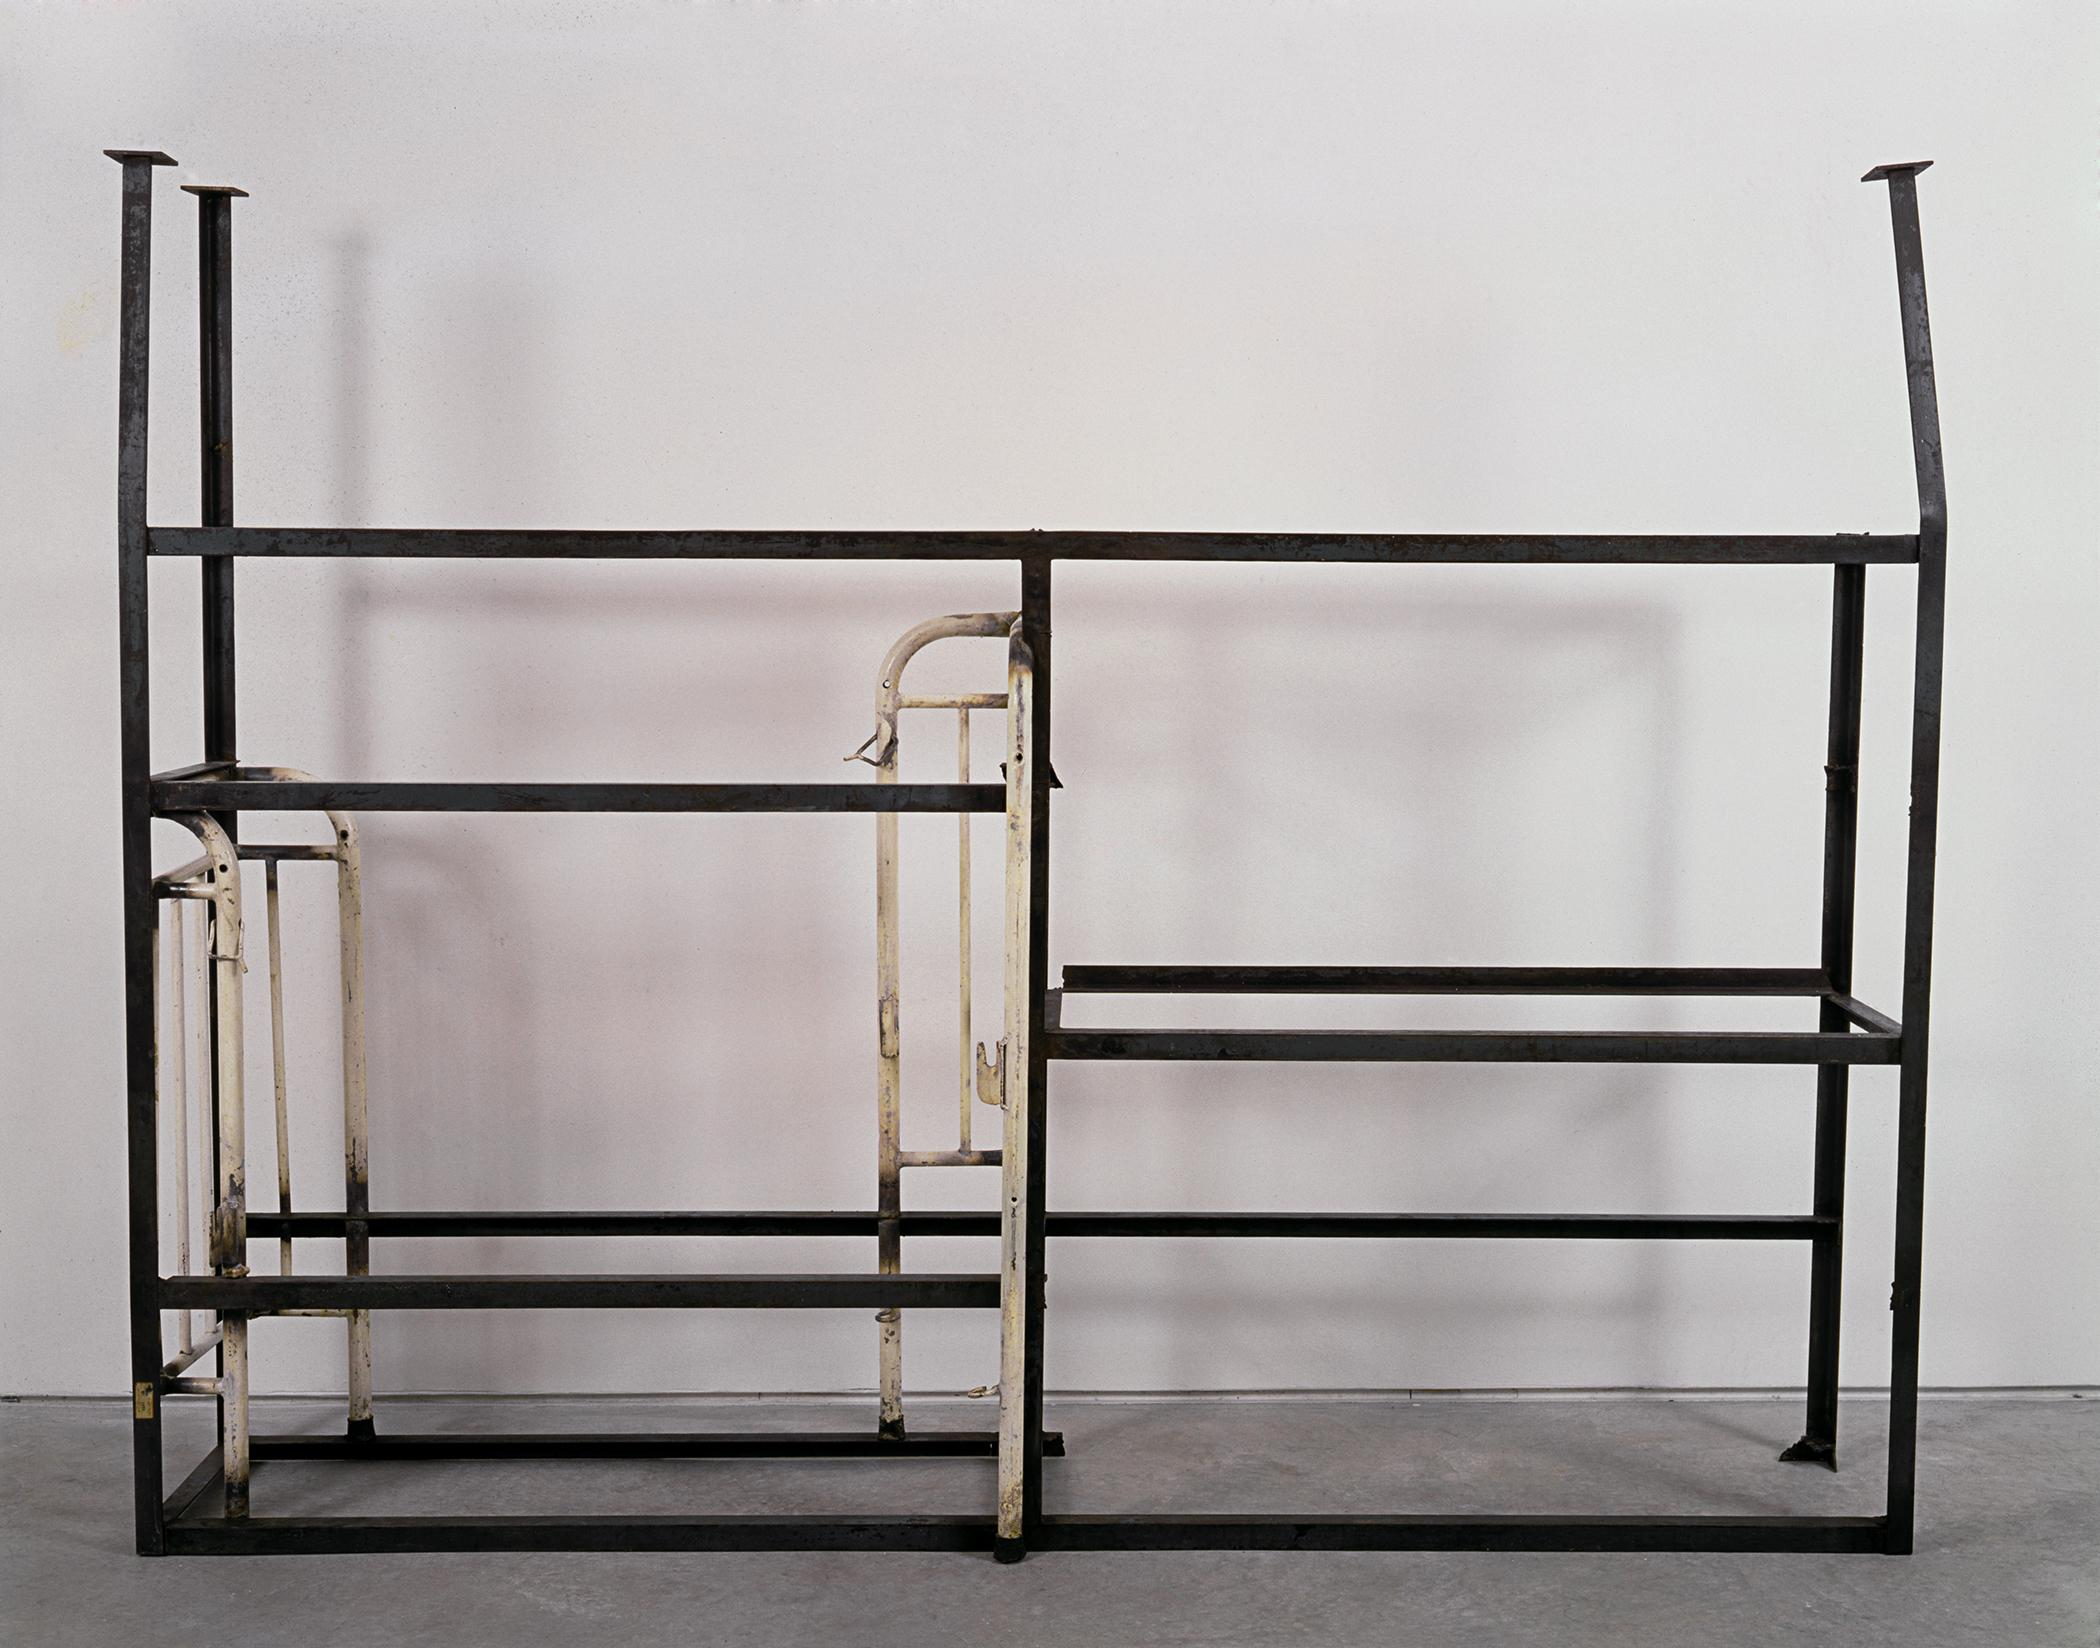 Several metal frames are welded together in an unexpected way.